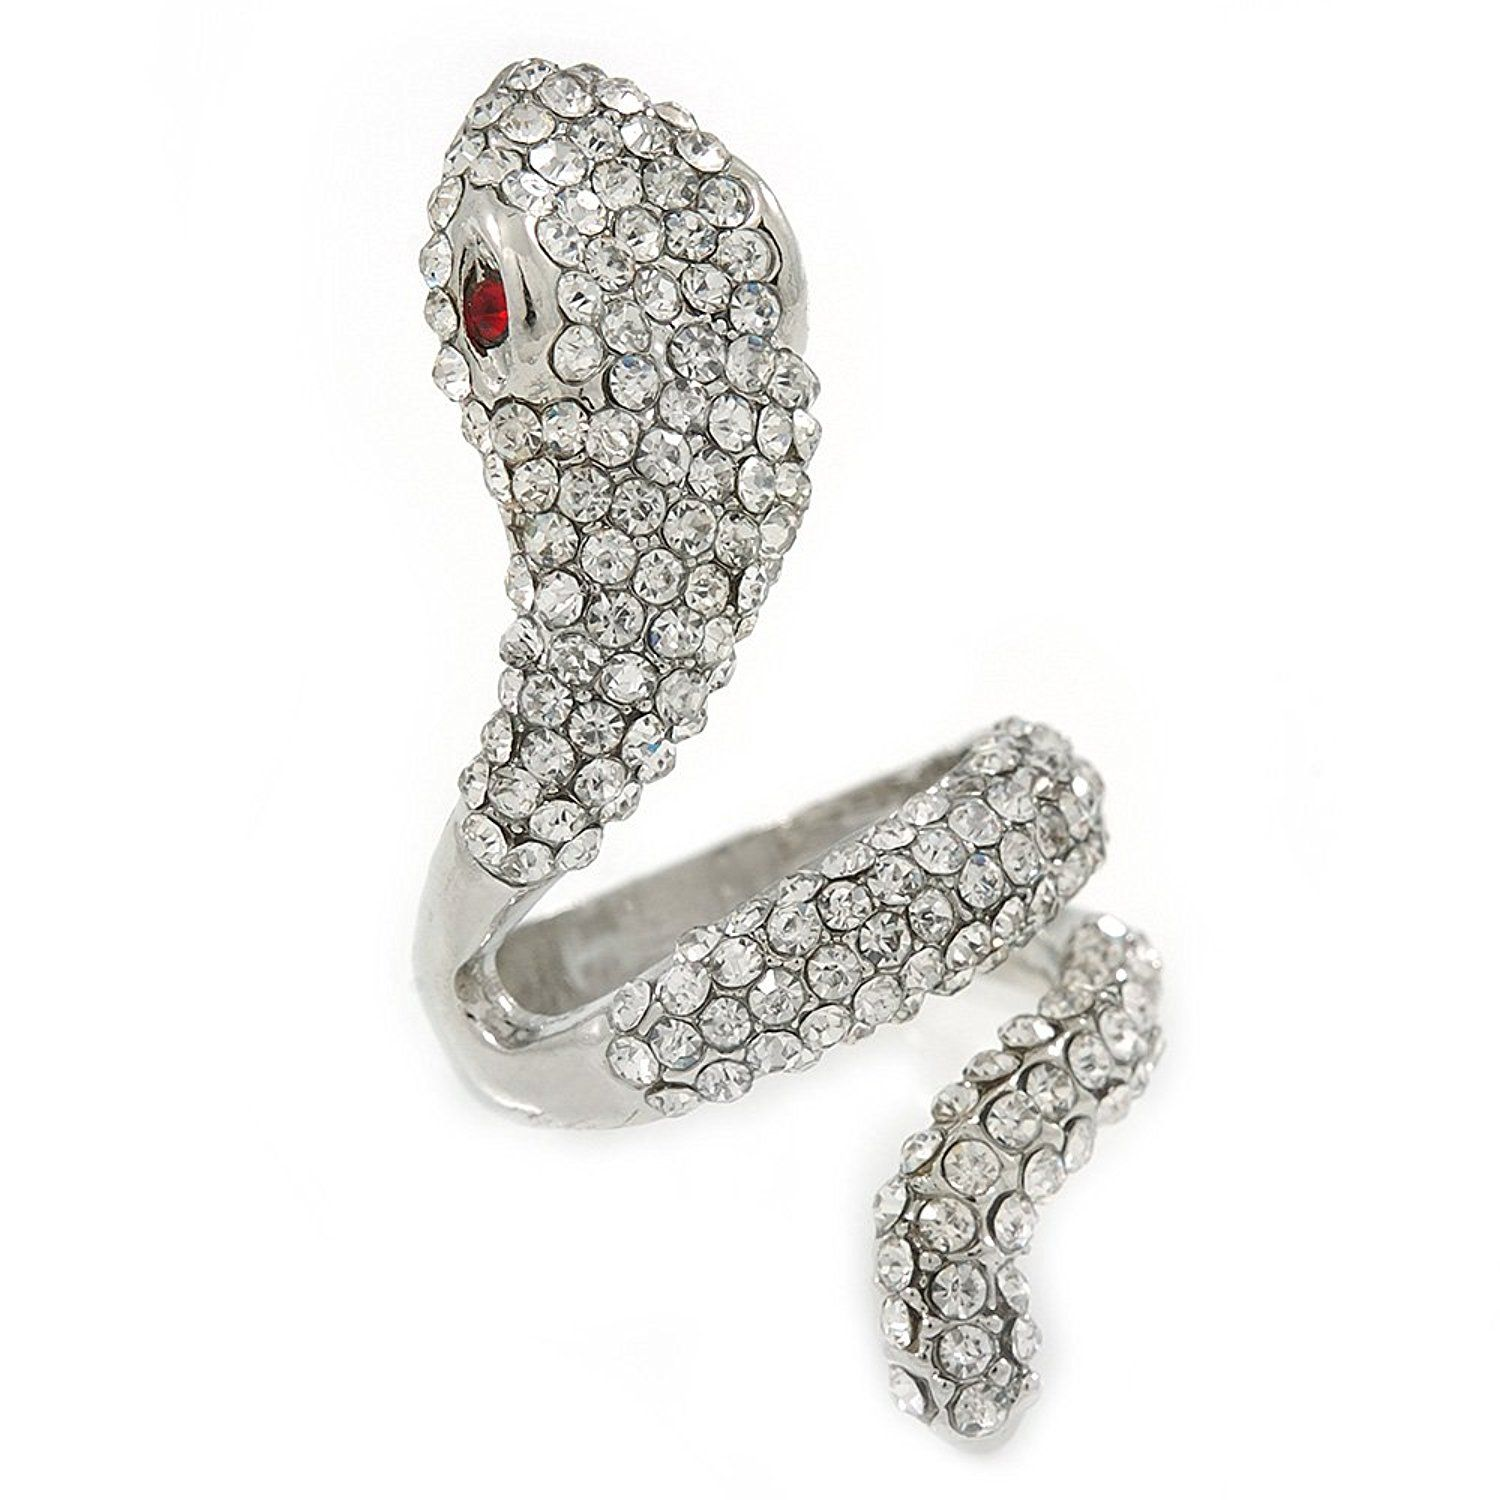 Wide Grey Austrian Crystal 'Coiled Snake' Double Band Ring In Rhodium Plating - 50mm Width - Size 8 vcaRZ04Br